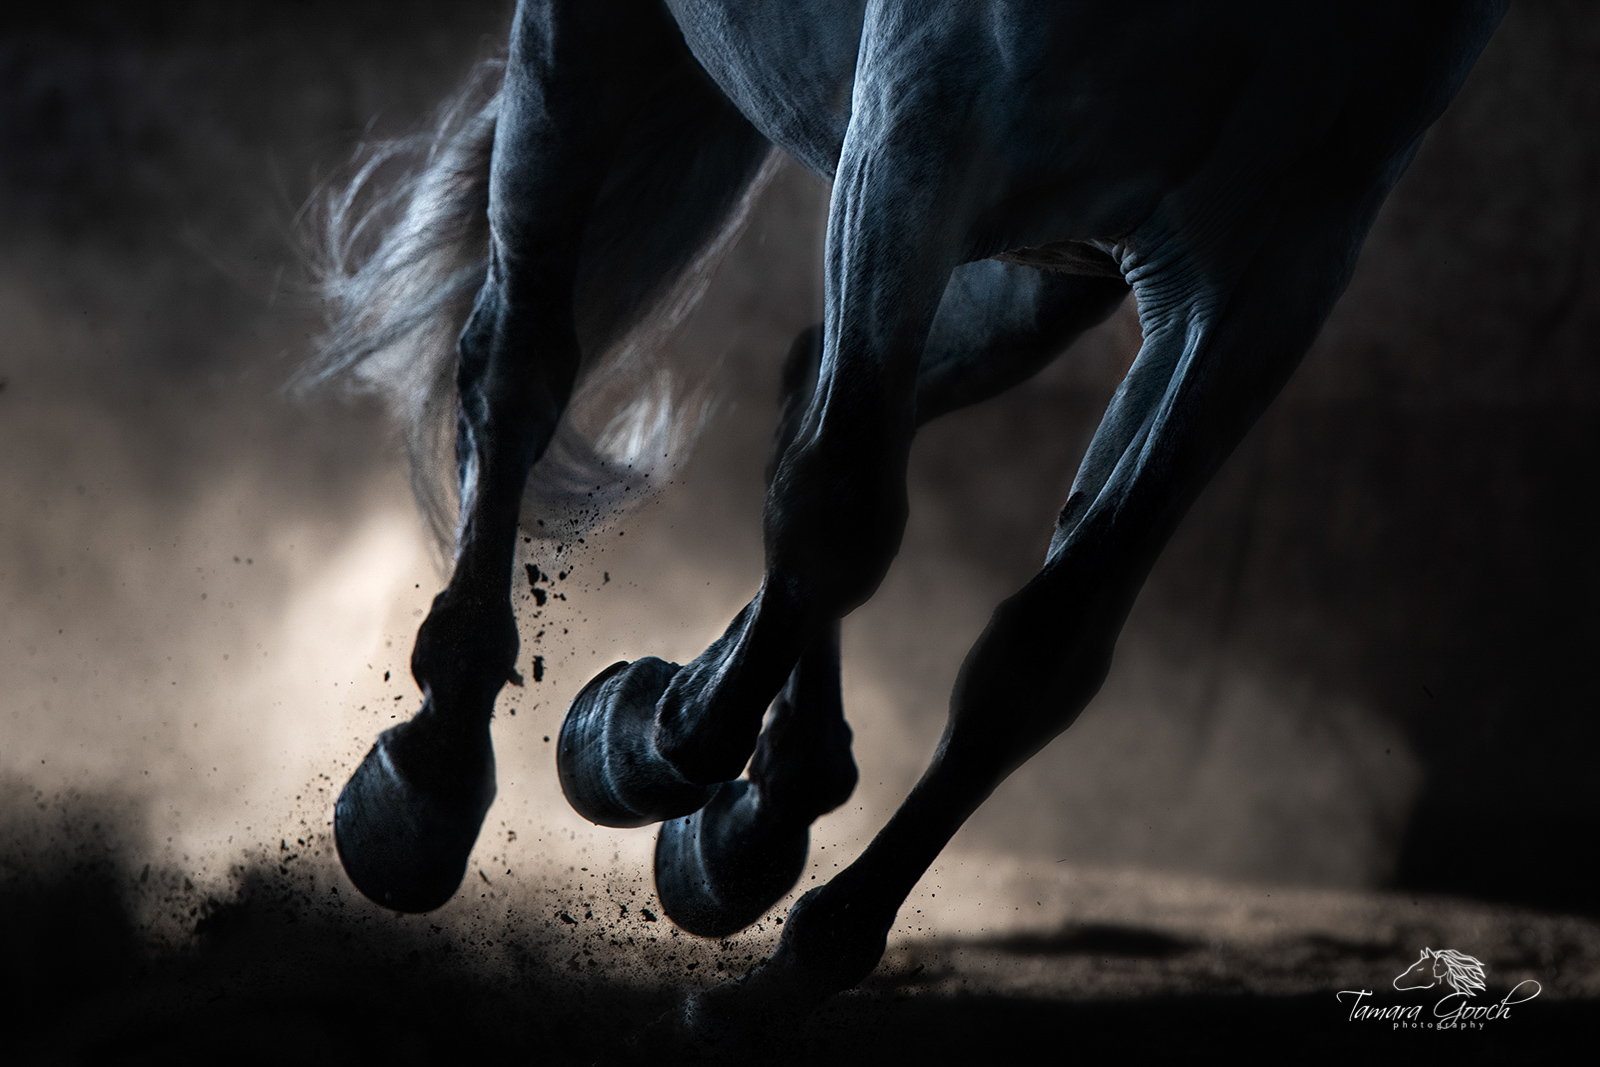 A photograph of a horses legs, tail and hooves in the dust.